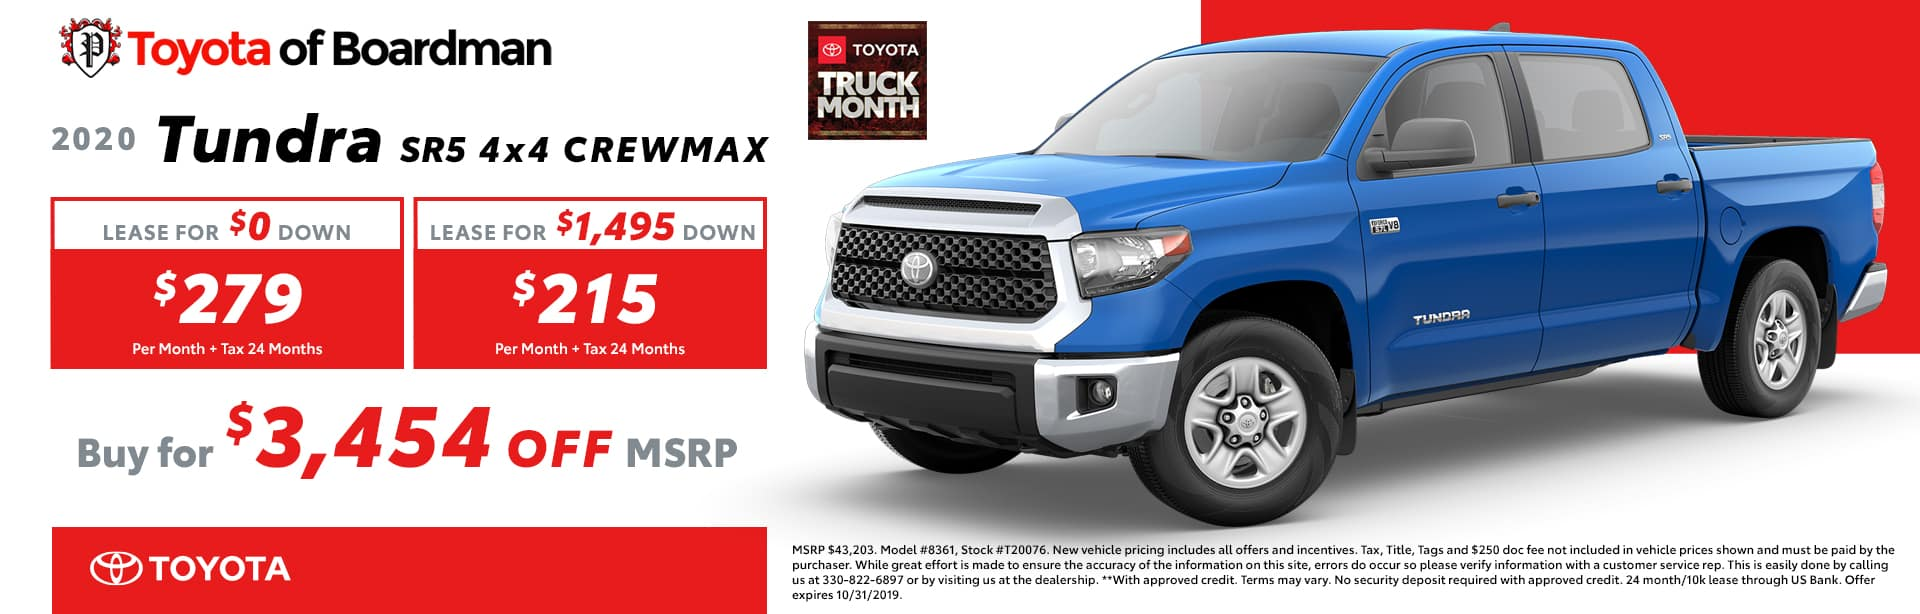 October special on the 2020 Toyota Tundra